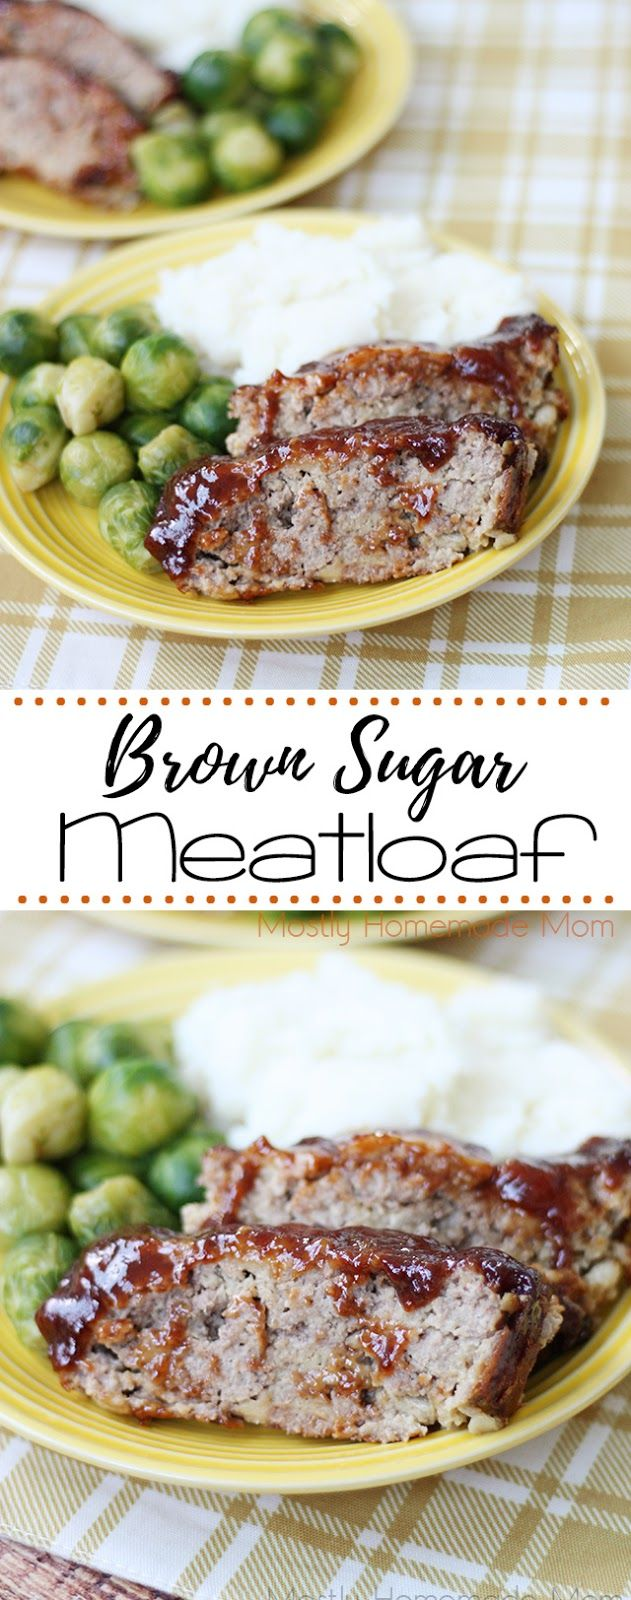 Brown Sugar Meatloaf - the perfect weeknight meal! Classic meatloaf with brown sugar in the glaze - so delicious!